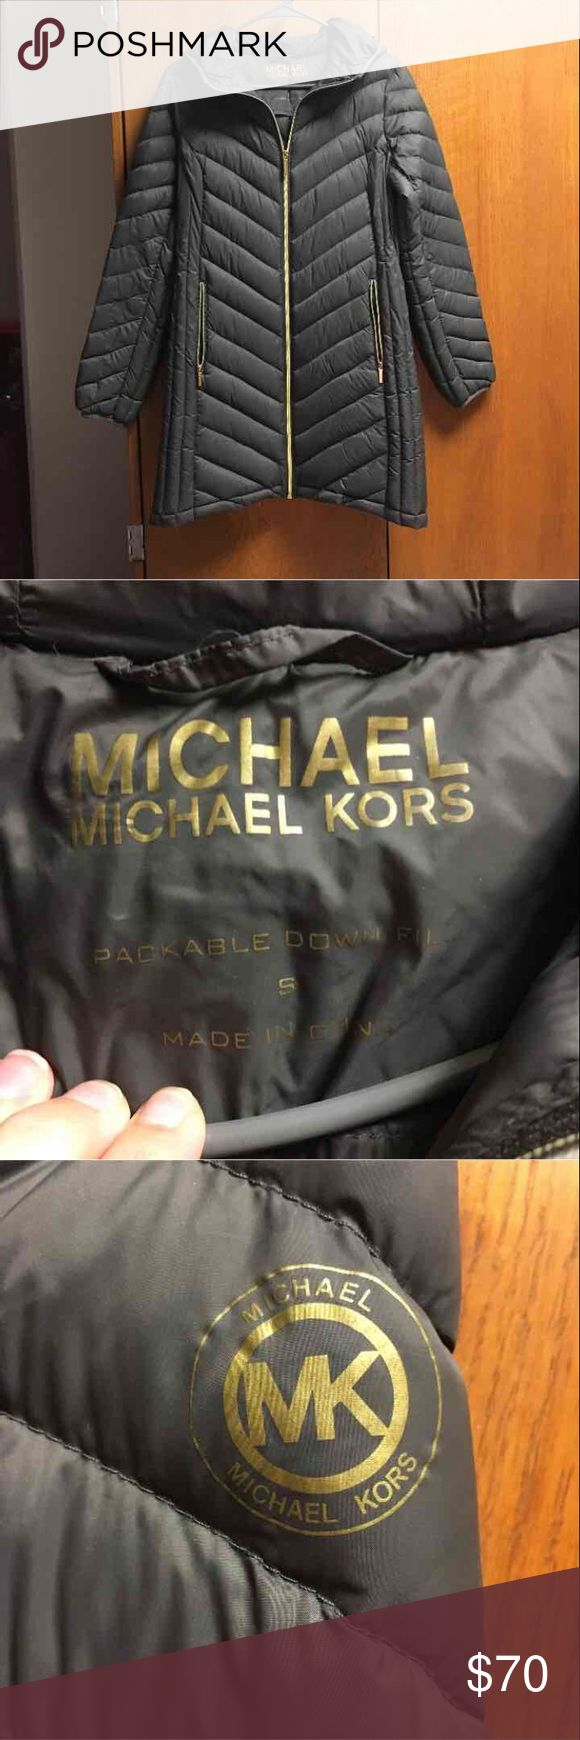 Michale Kors puffer coat Very warm, perfect condition Michael Kors Jackets & Coats Puffers